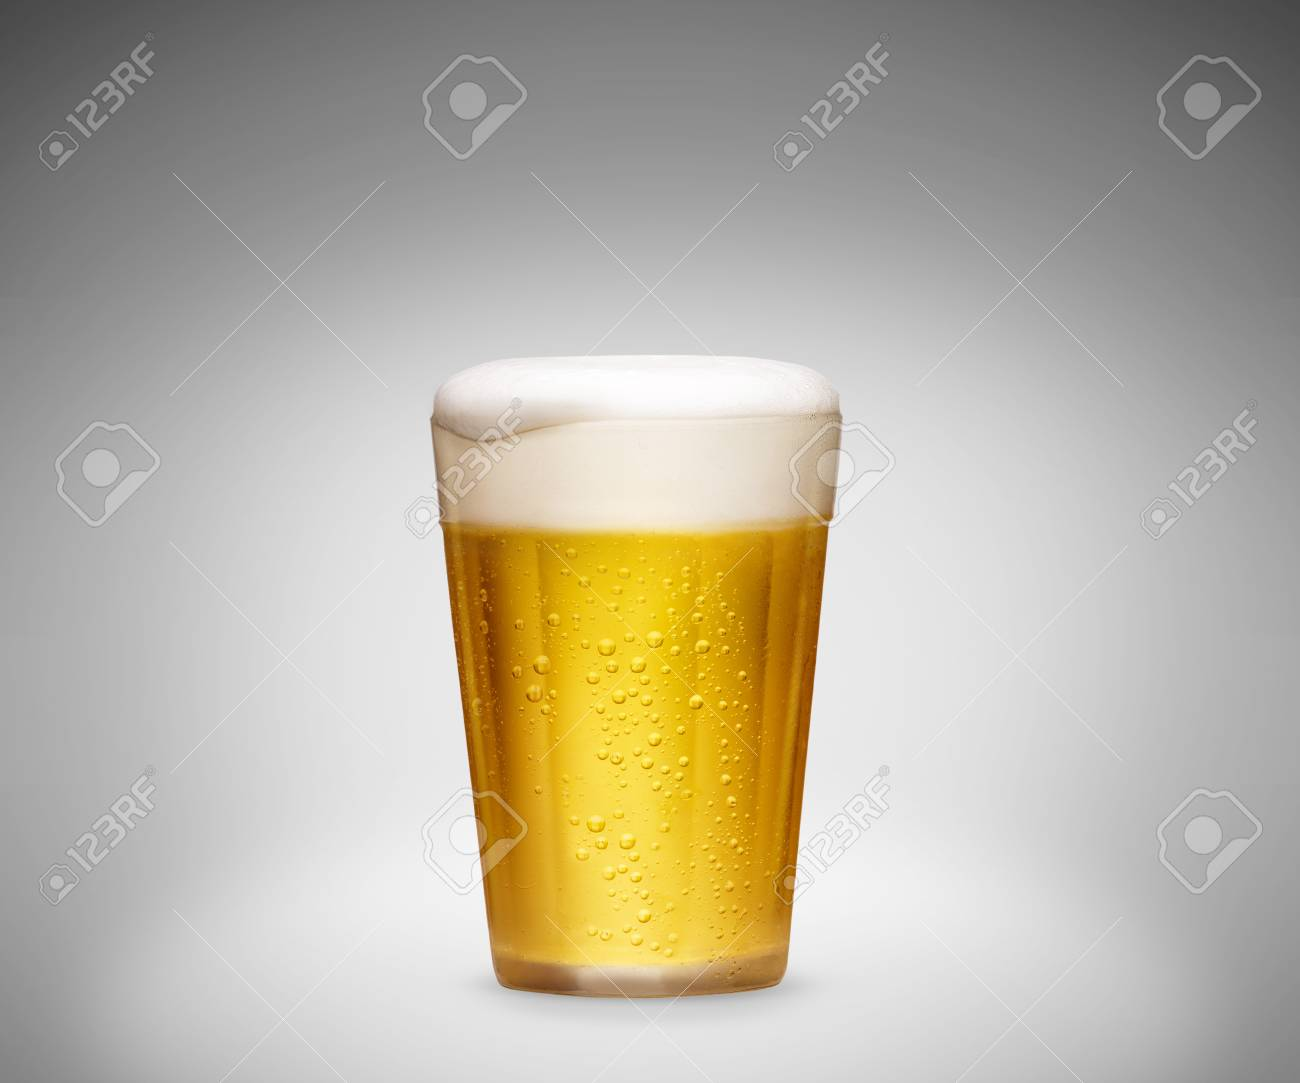 Glass of cold beer - 49967118